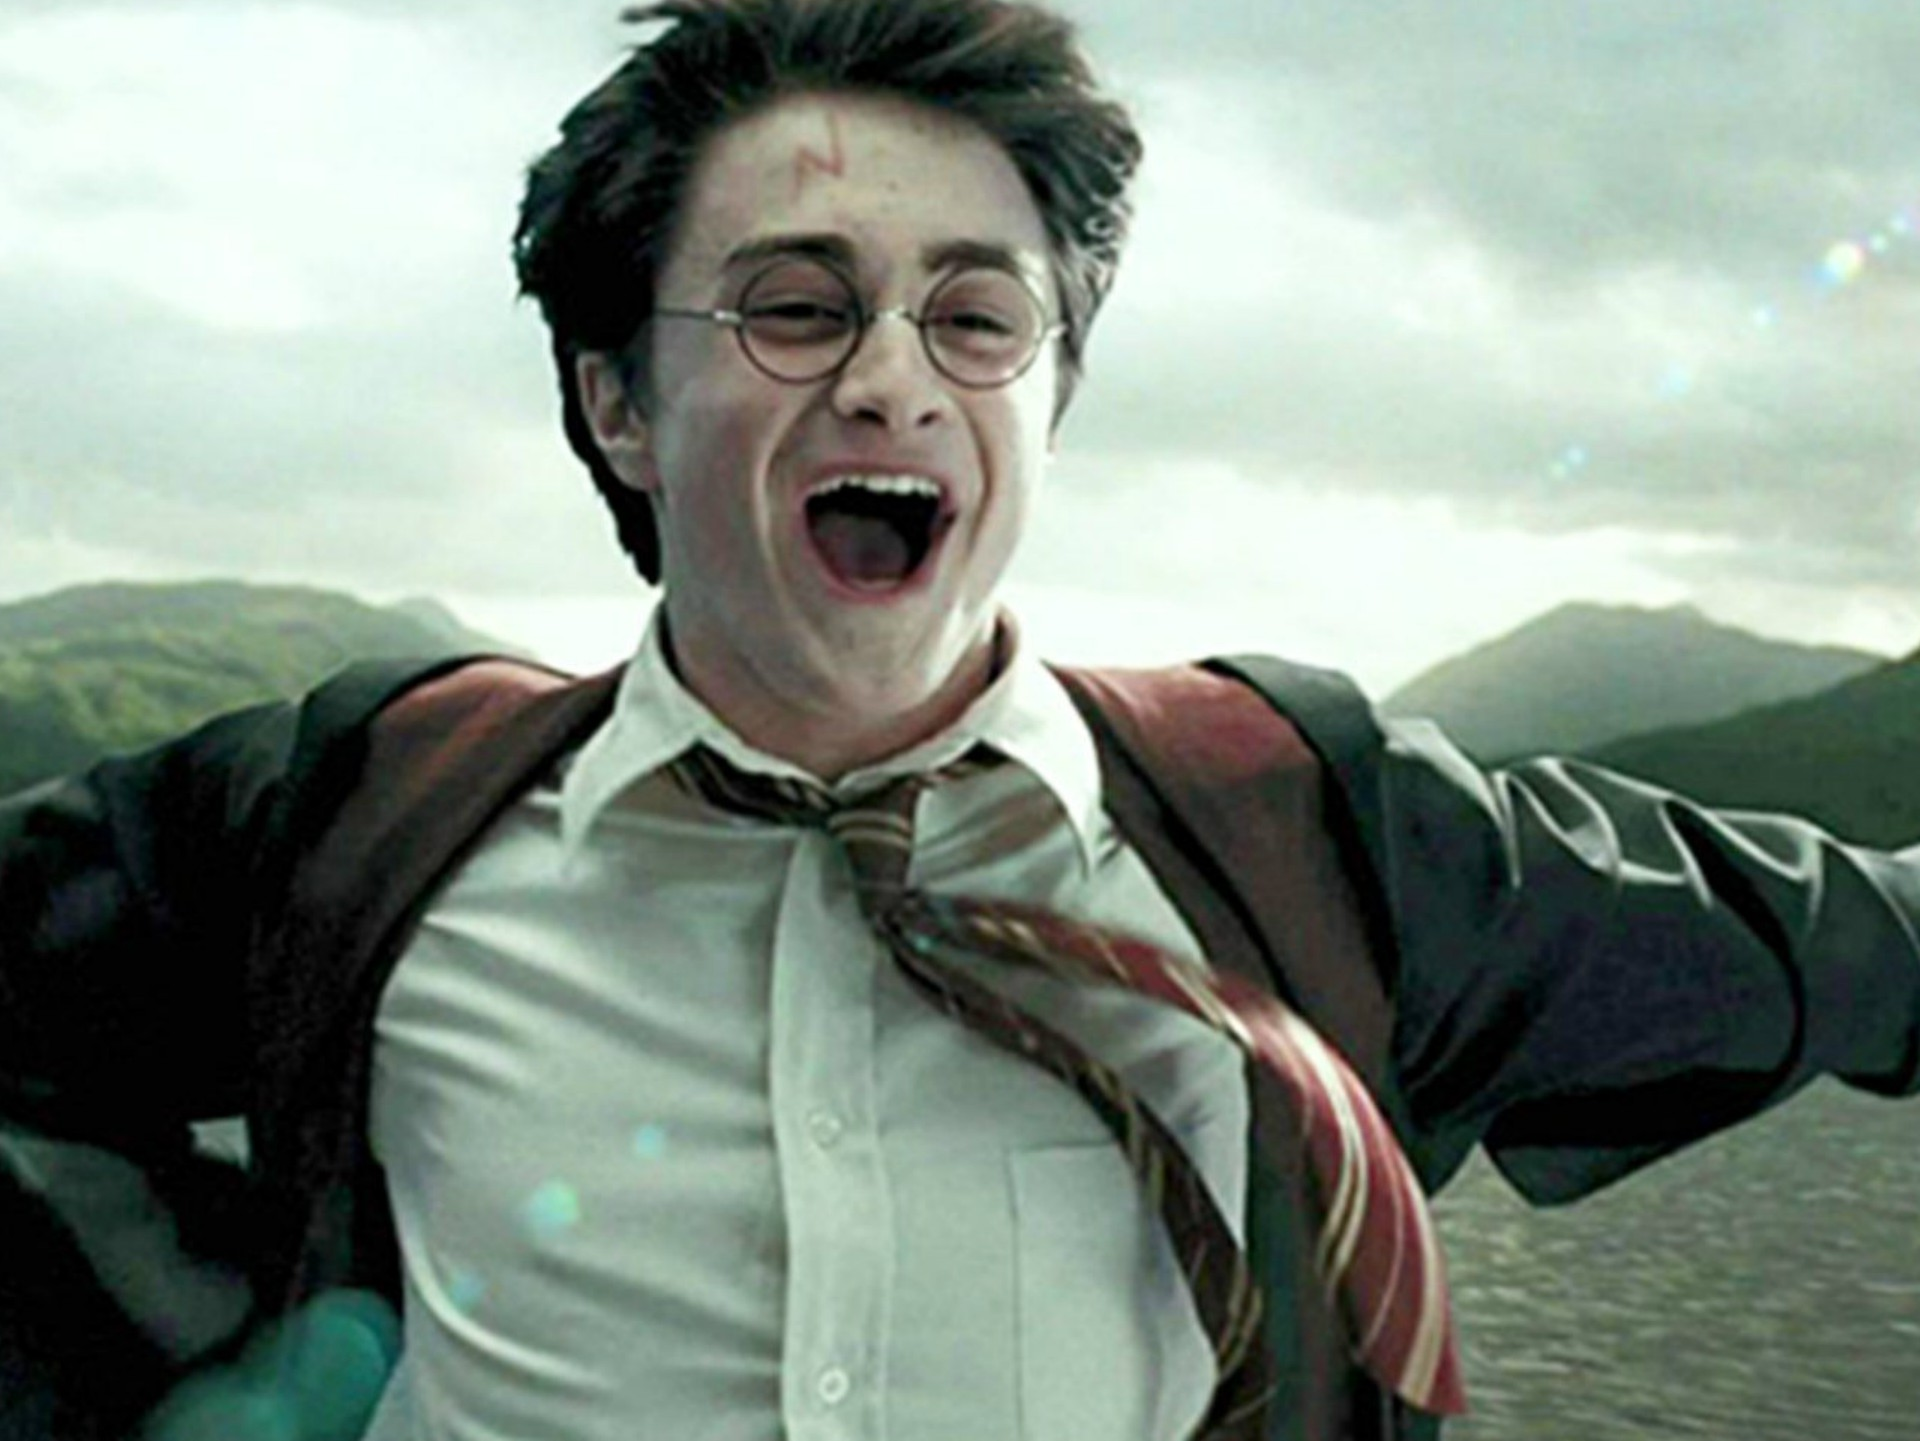 Harry Potter River Cruise Coming to England